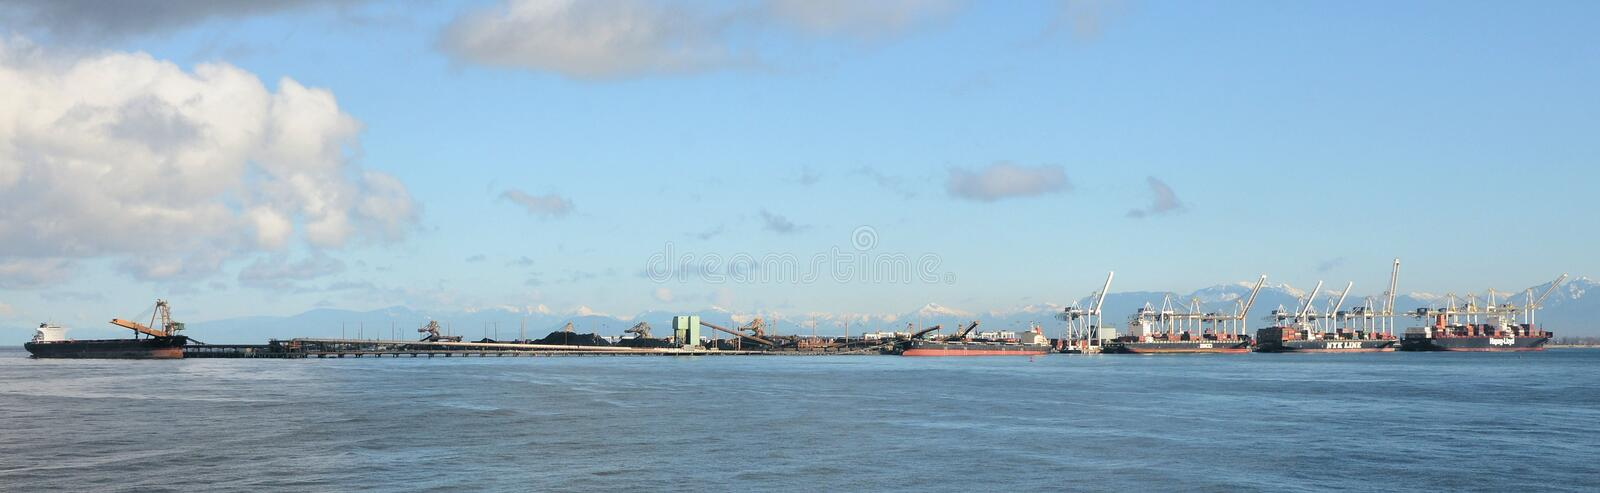 Nort Vancouver sea port royalty free stock image